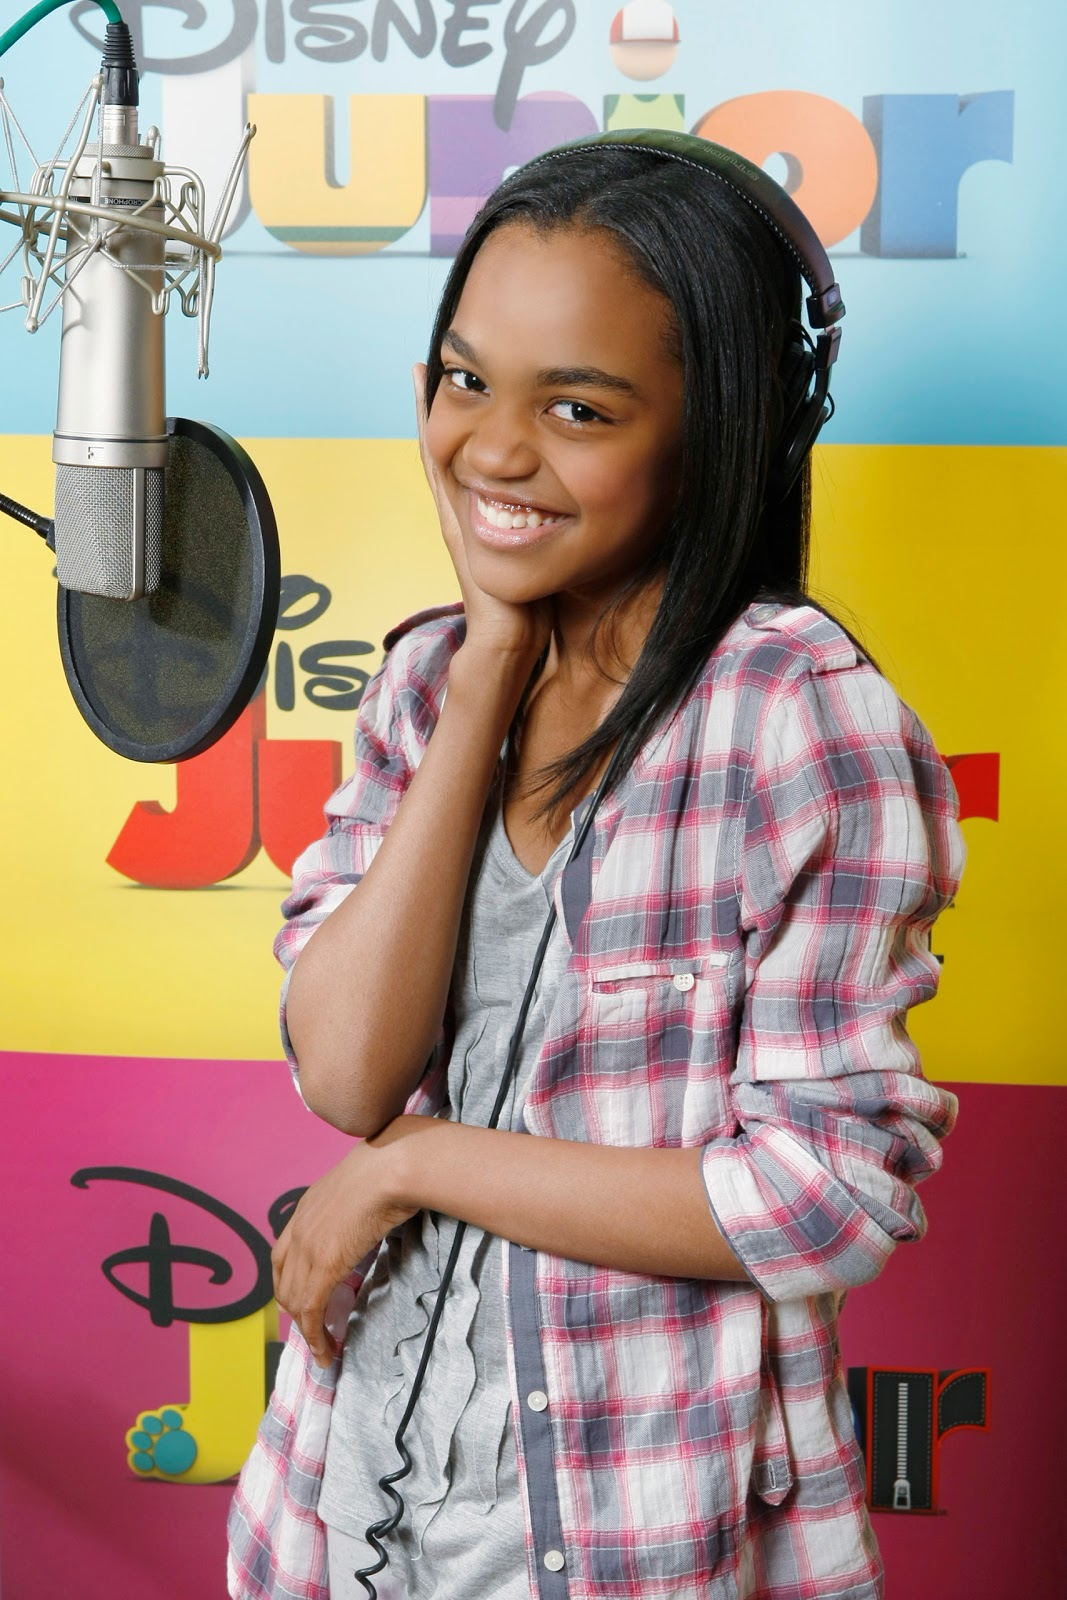 Disney sisters china anne mcclain sings doc mcstuffins theme song